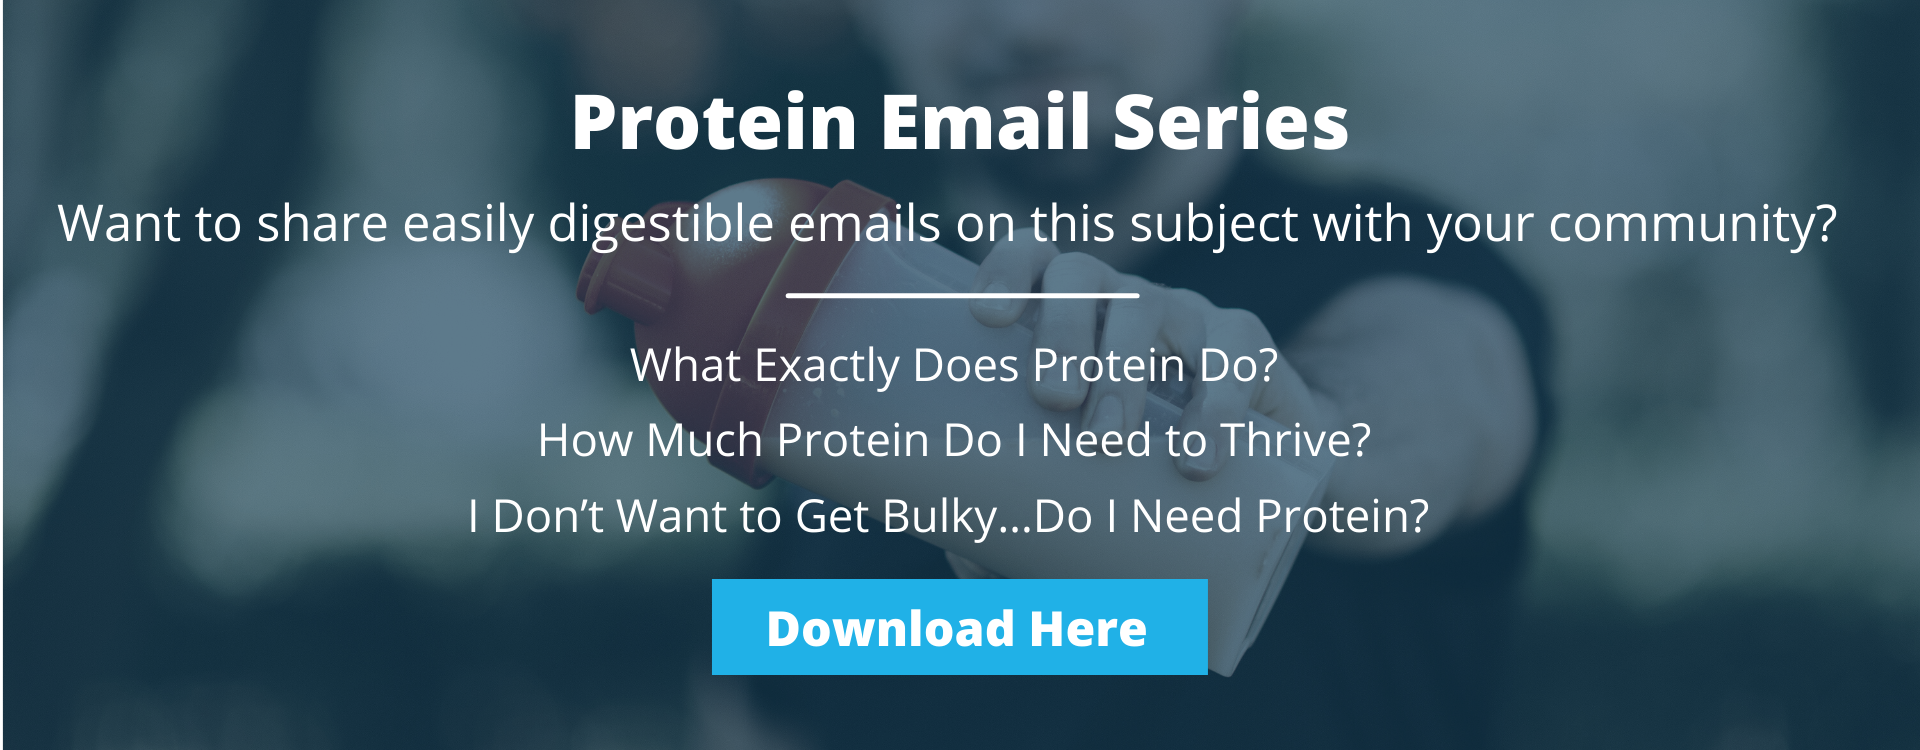 Protein Email Series